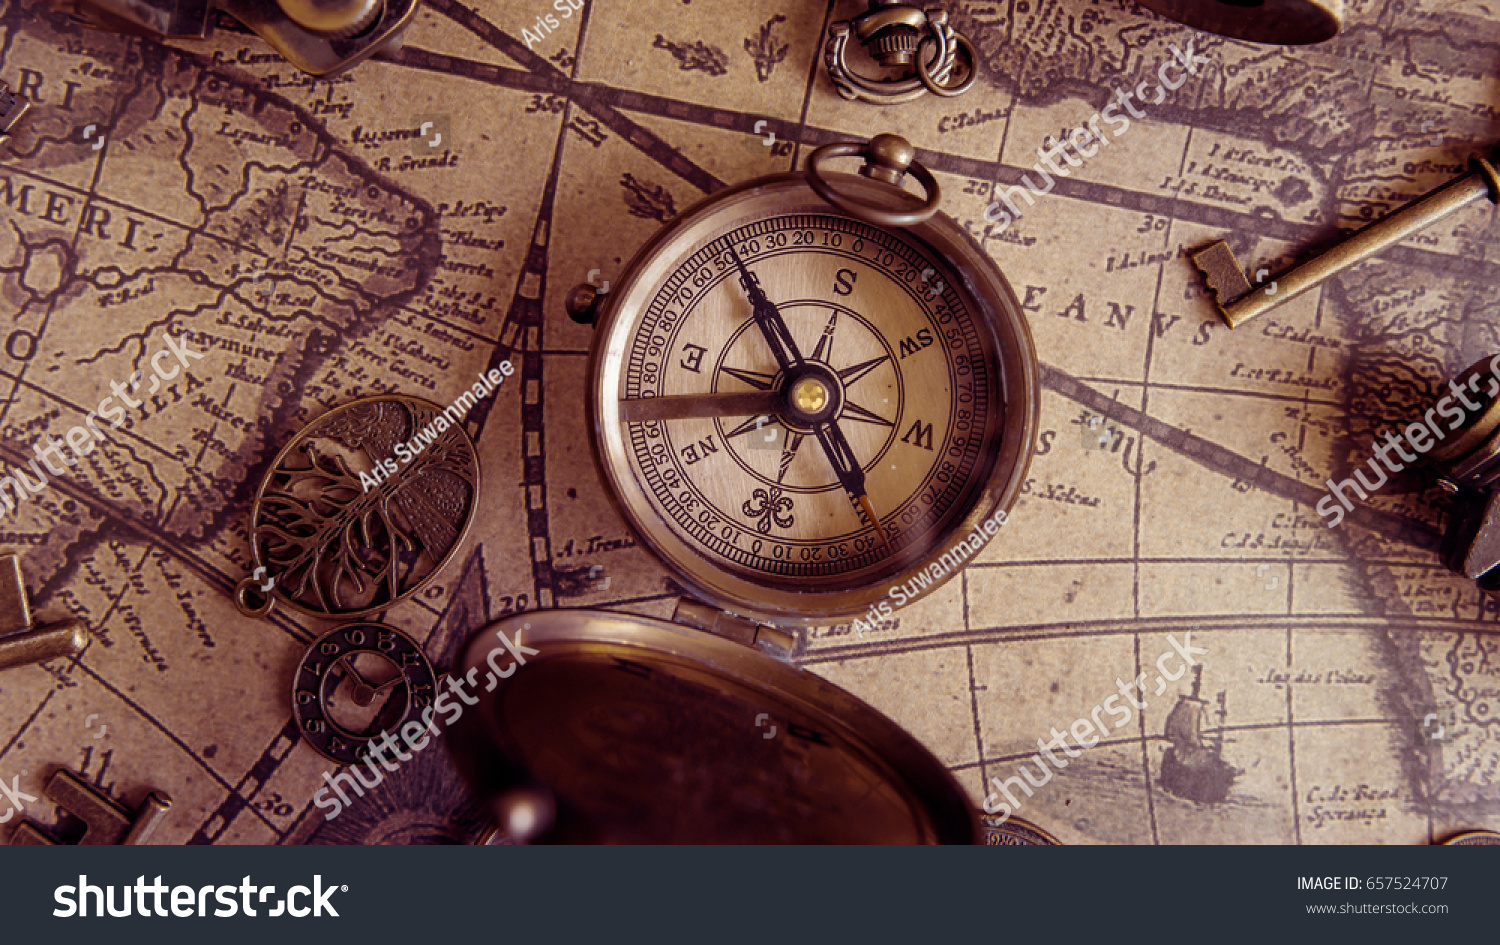 Antique compass on ancient world map stock photo edit now antique compass on ancient world map gumiabroncs Gallery